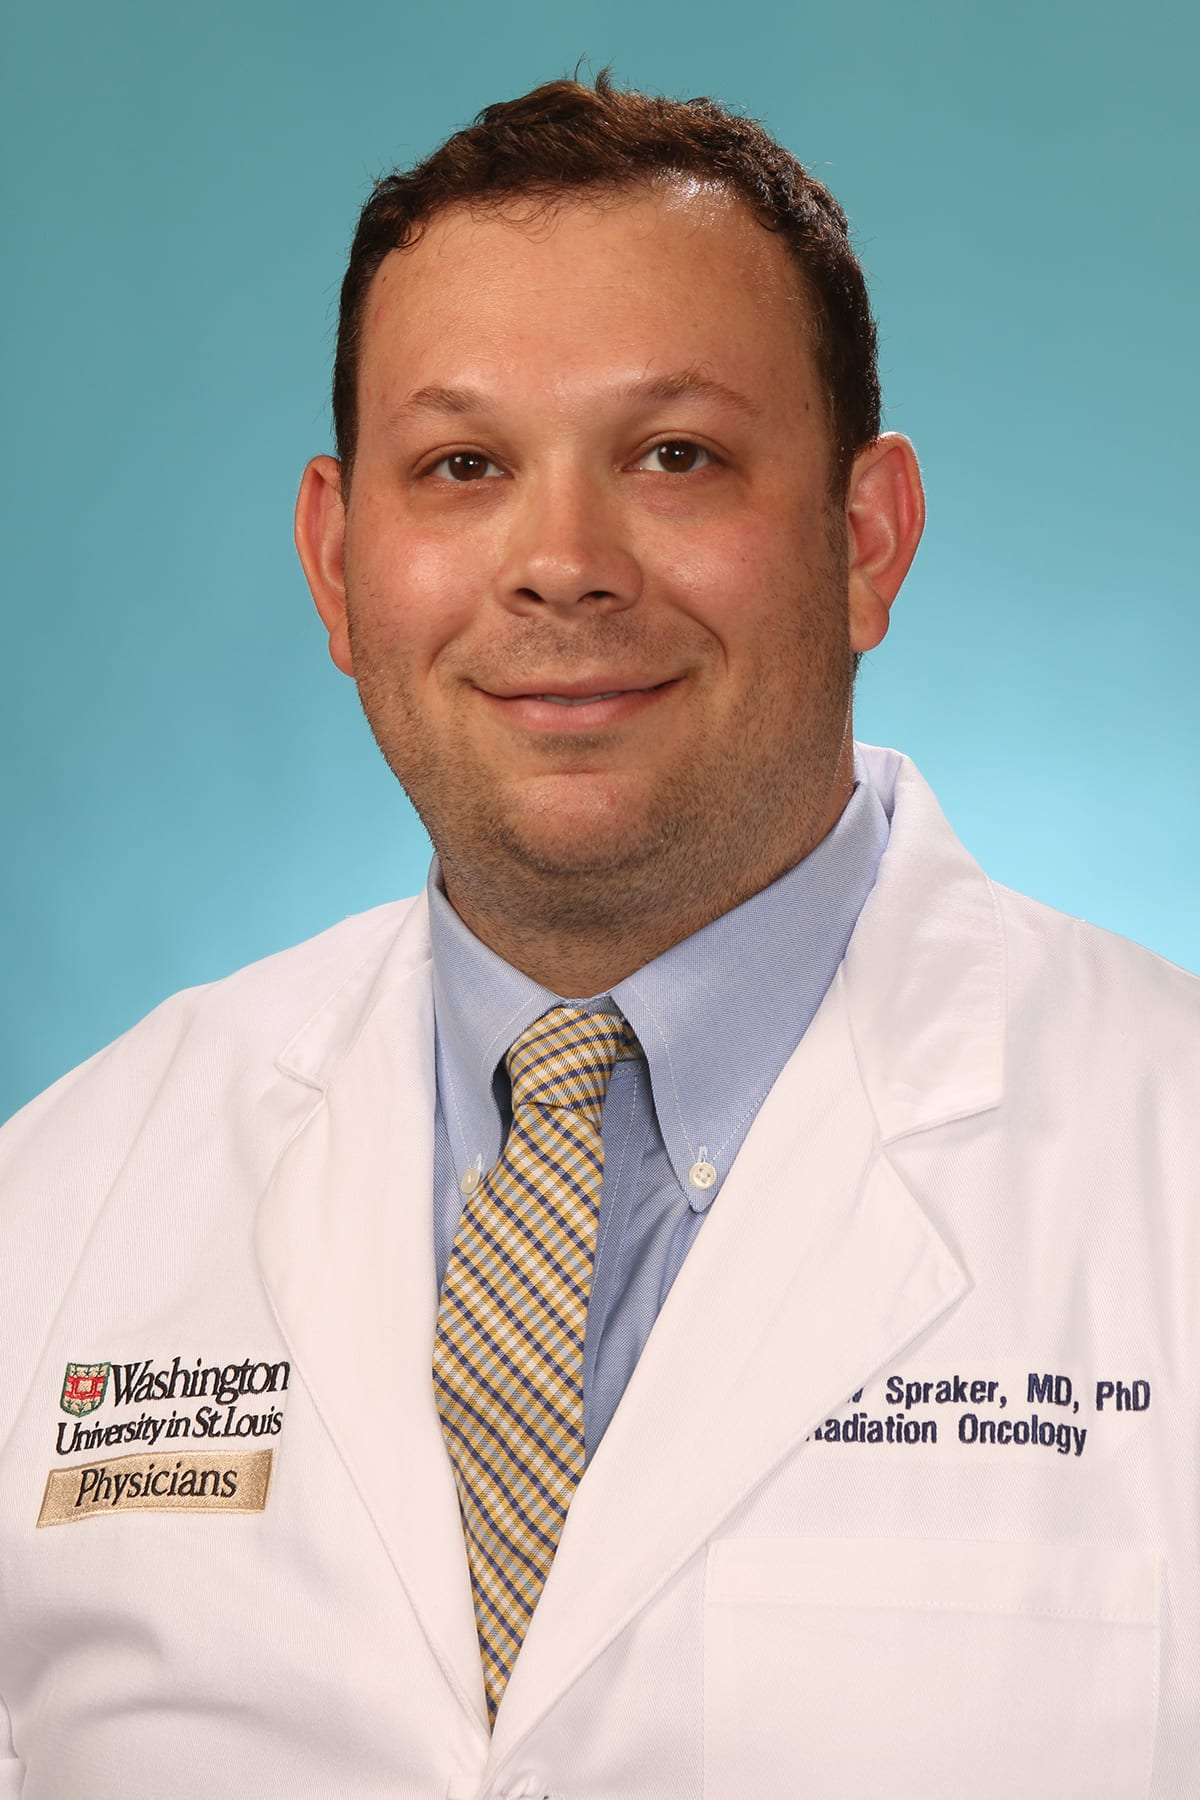 Matthew Spraker, MD, PhD | Department of Radiation Oncology